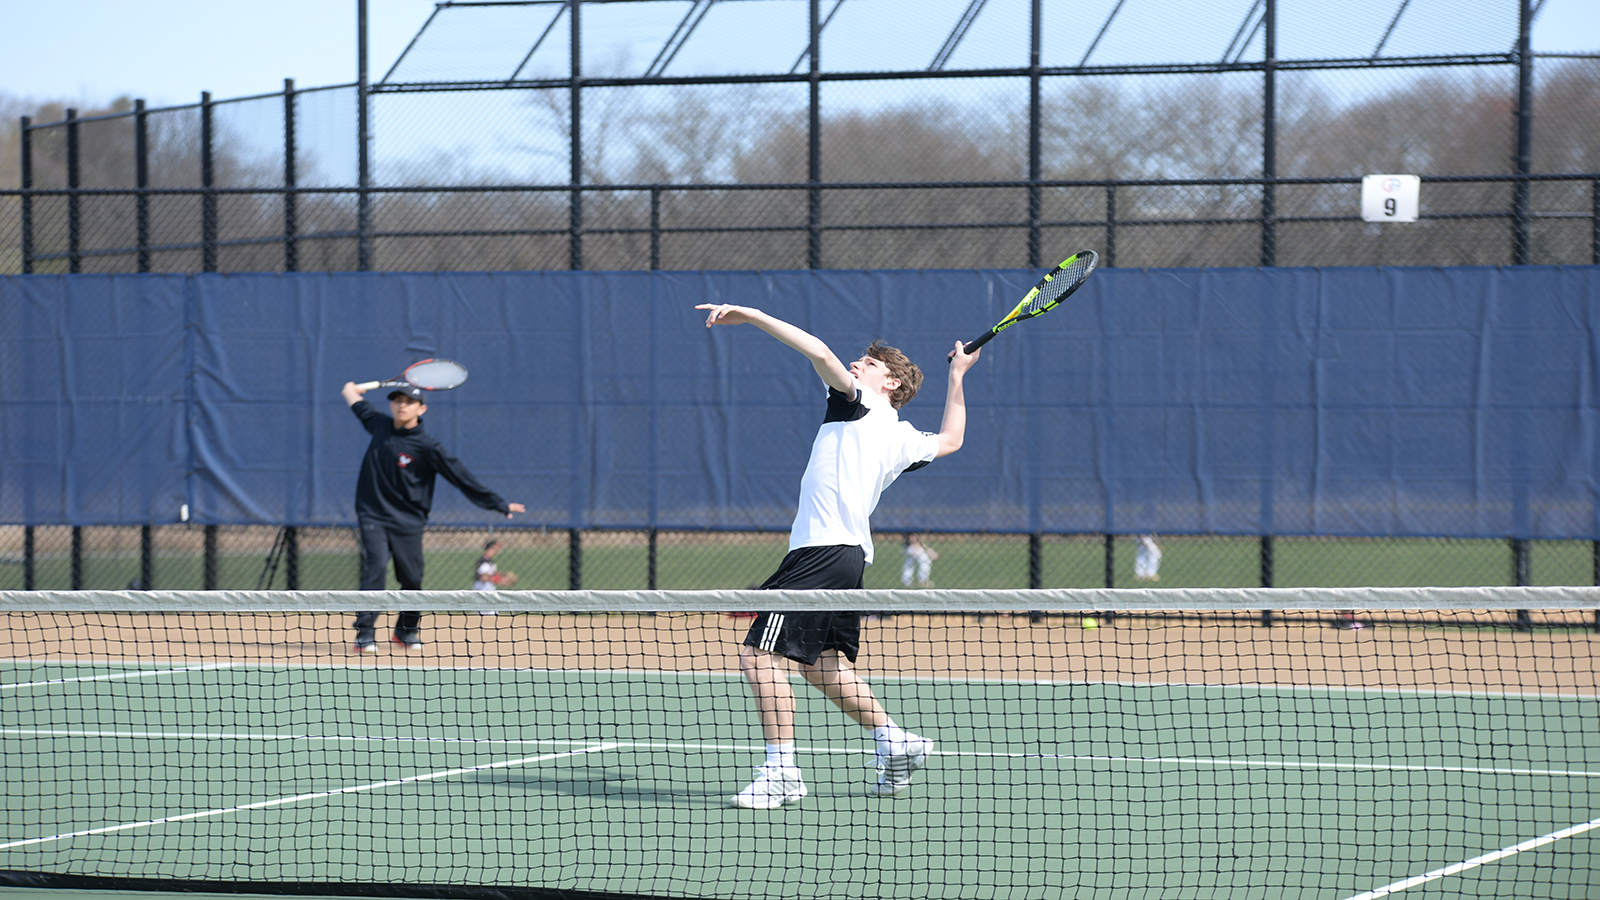 Boys Tennis: GA Wins First Match of Season Against Friends' Central